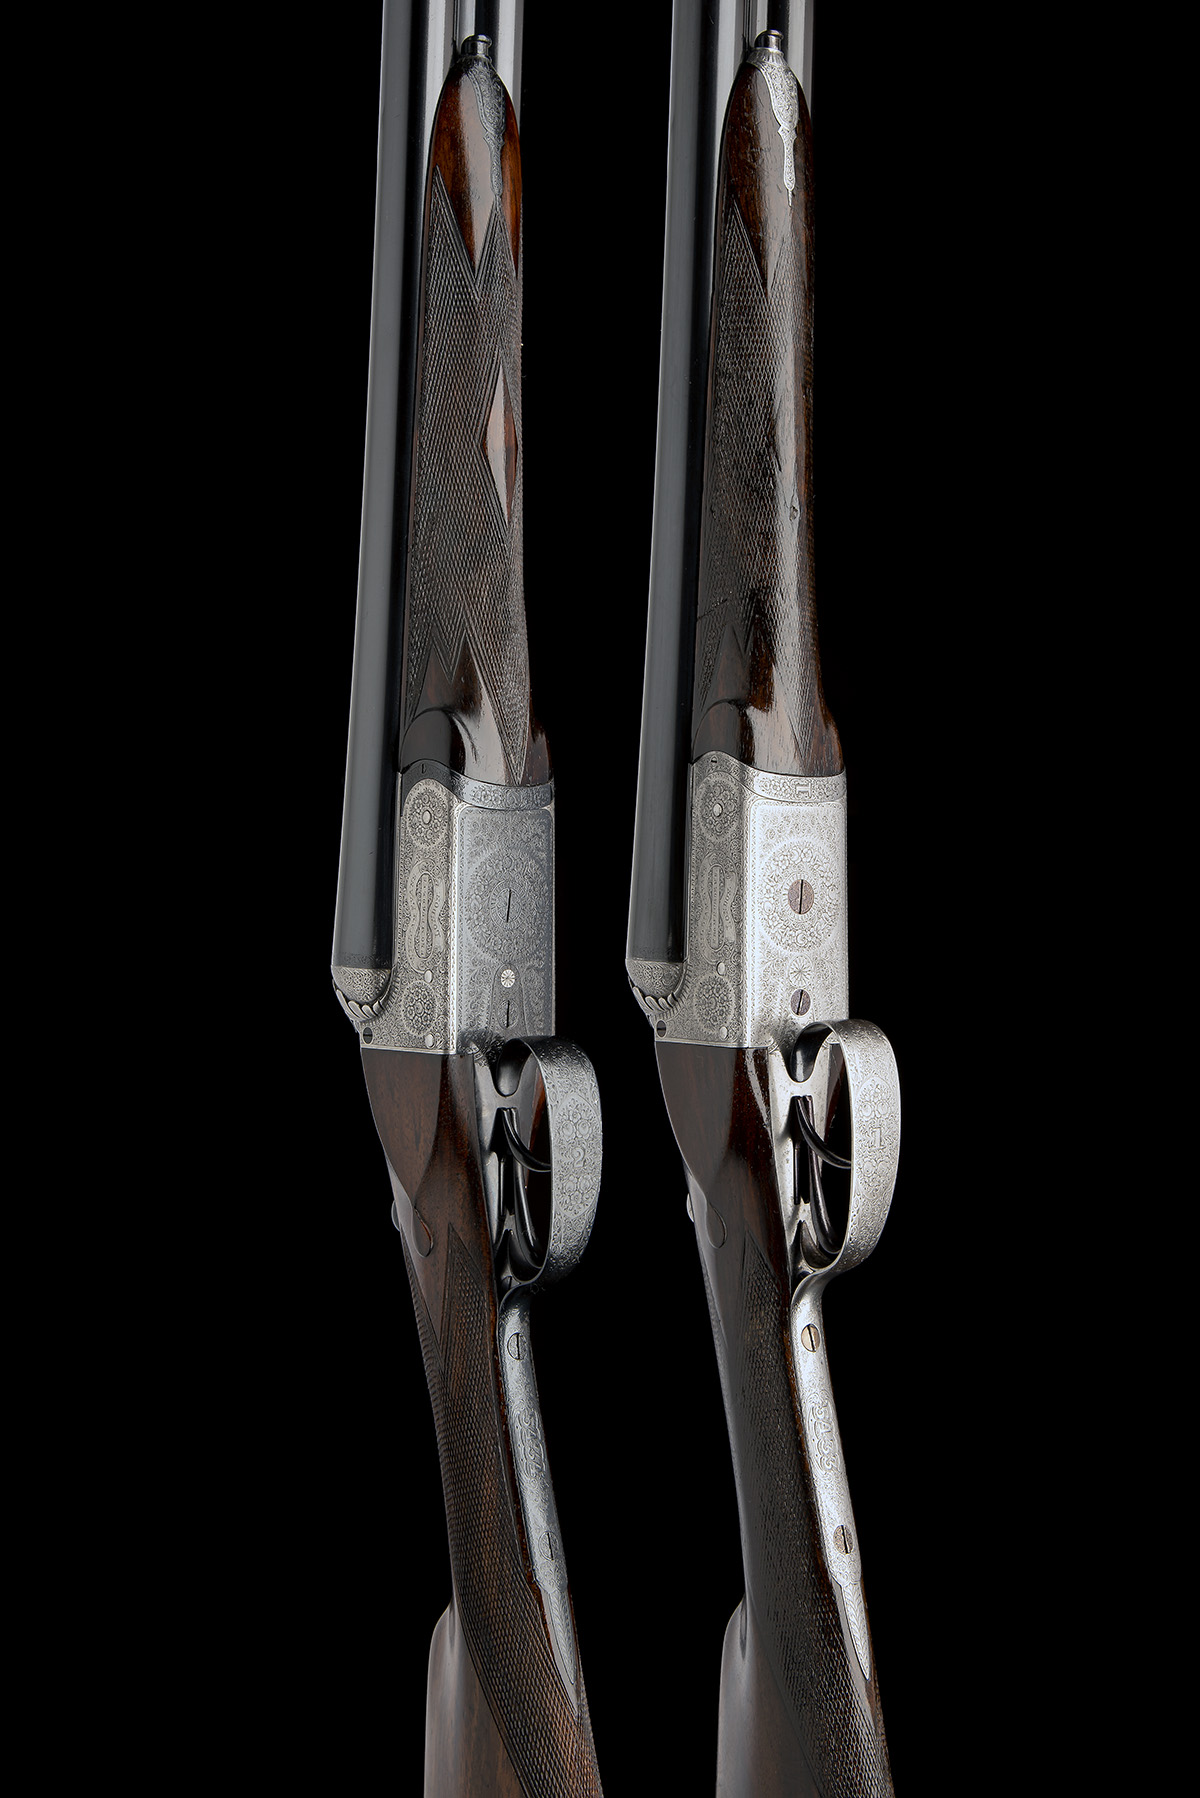 WILLIAM EVANS (FROM PURDEY'S) A PAIR OF 12-BORE BOXLOCK EJECTORS, serial no. 5433 / 4, for 1901, - Image 3 of 11